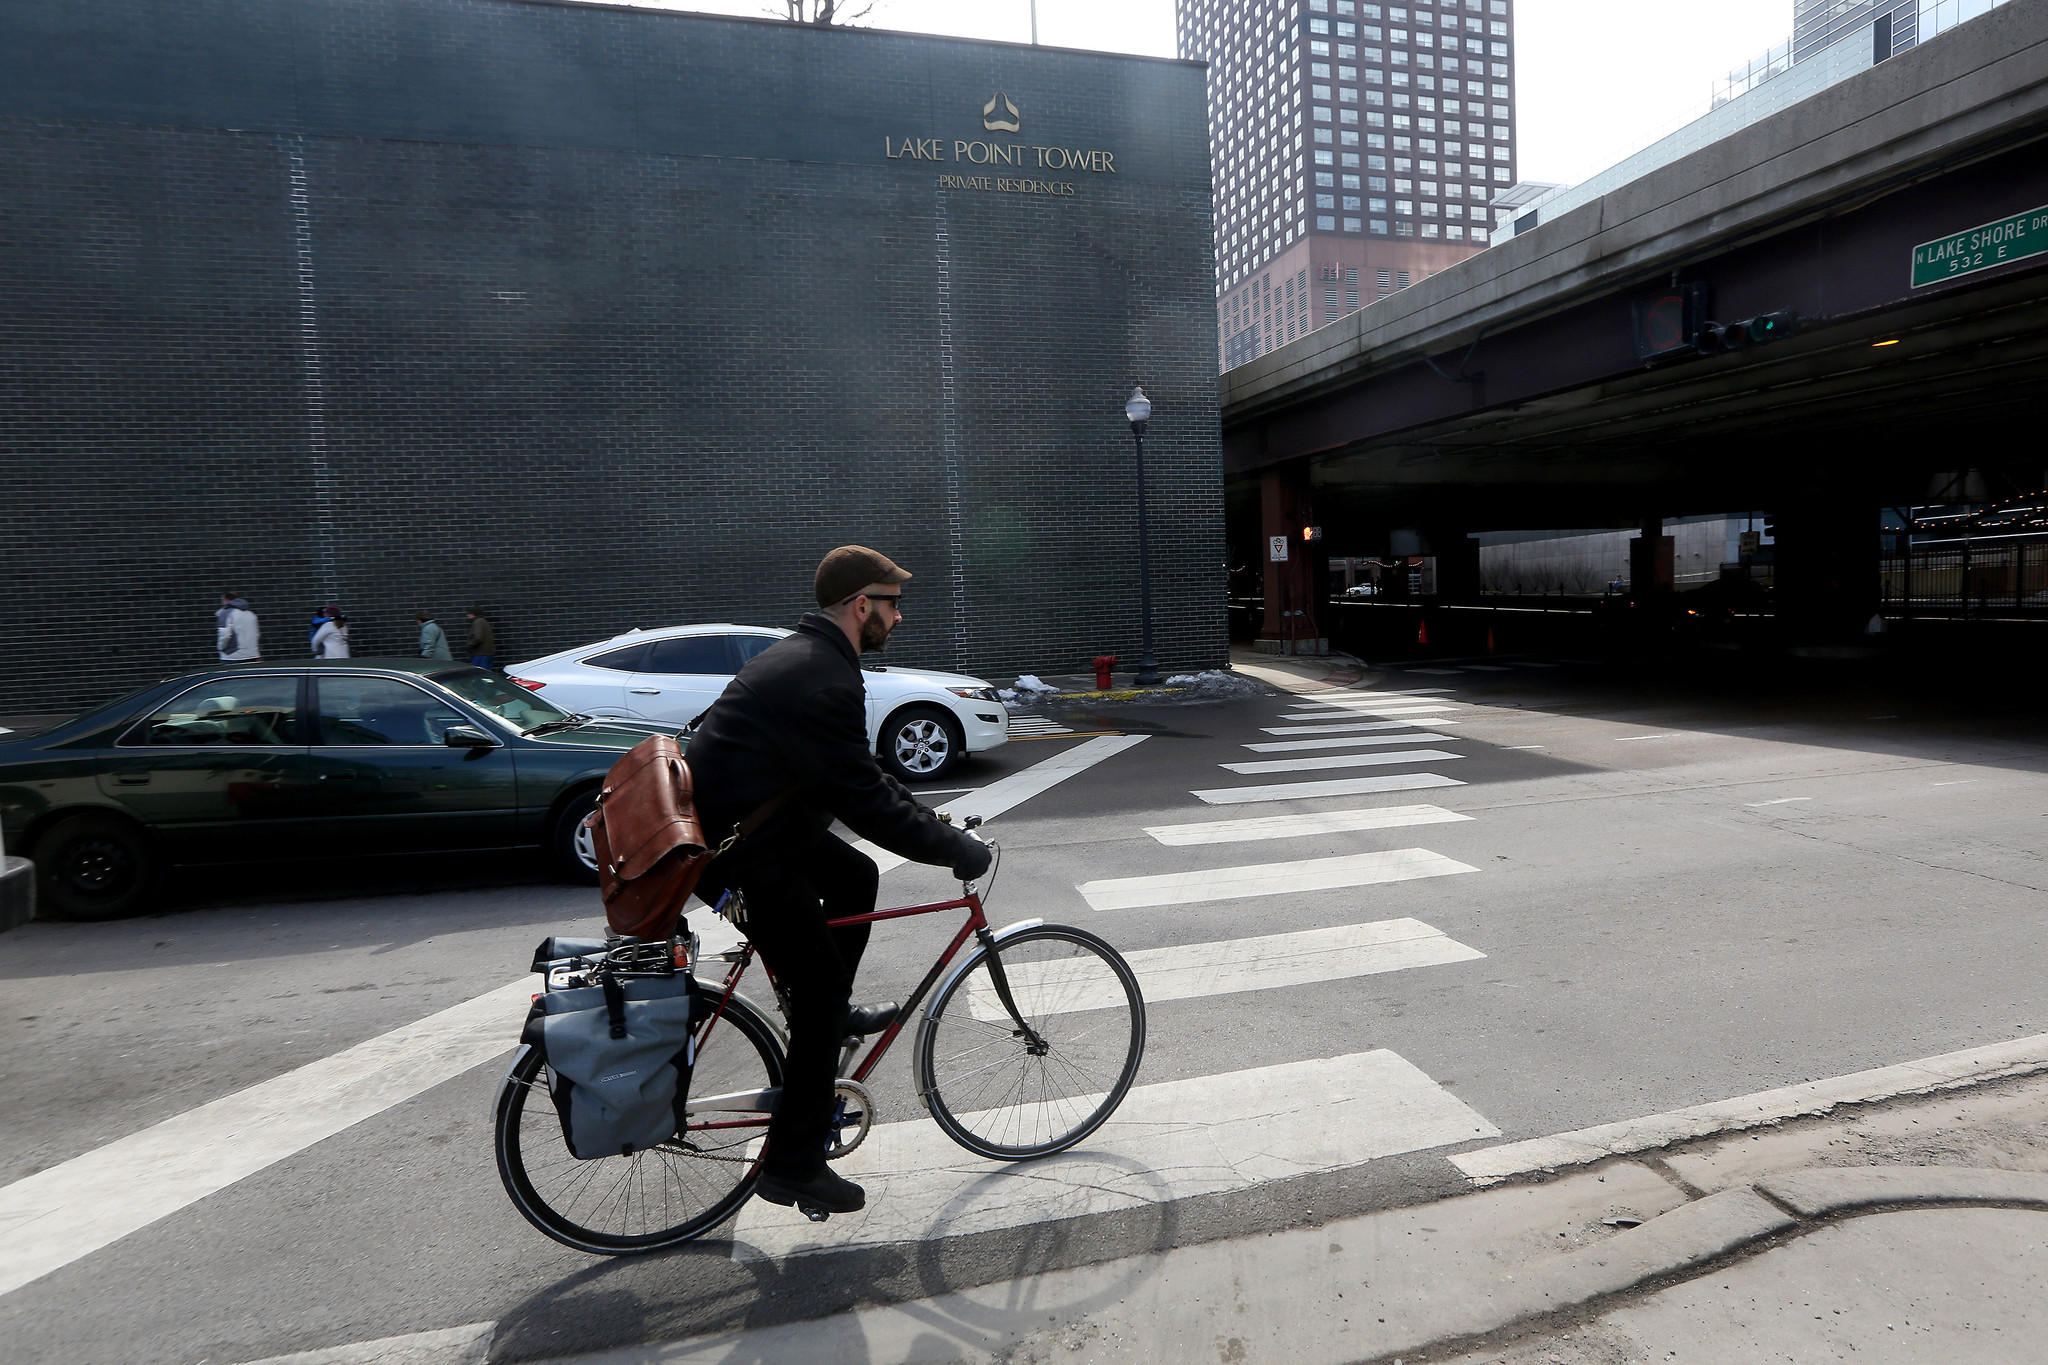 The crosswalk at Grand Avenue and Lake Shore Drive is part of the bike path near Navy Pier.